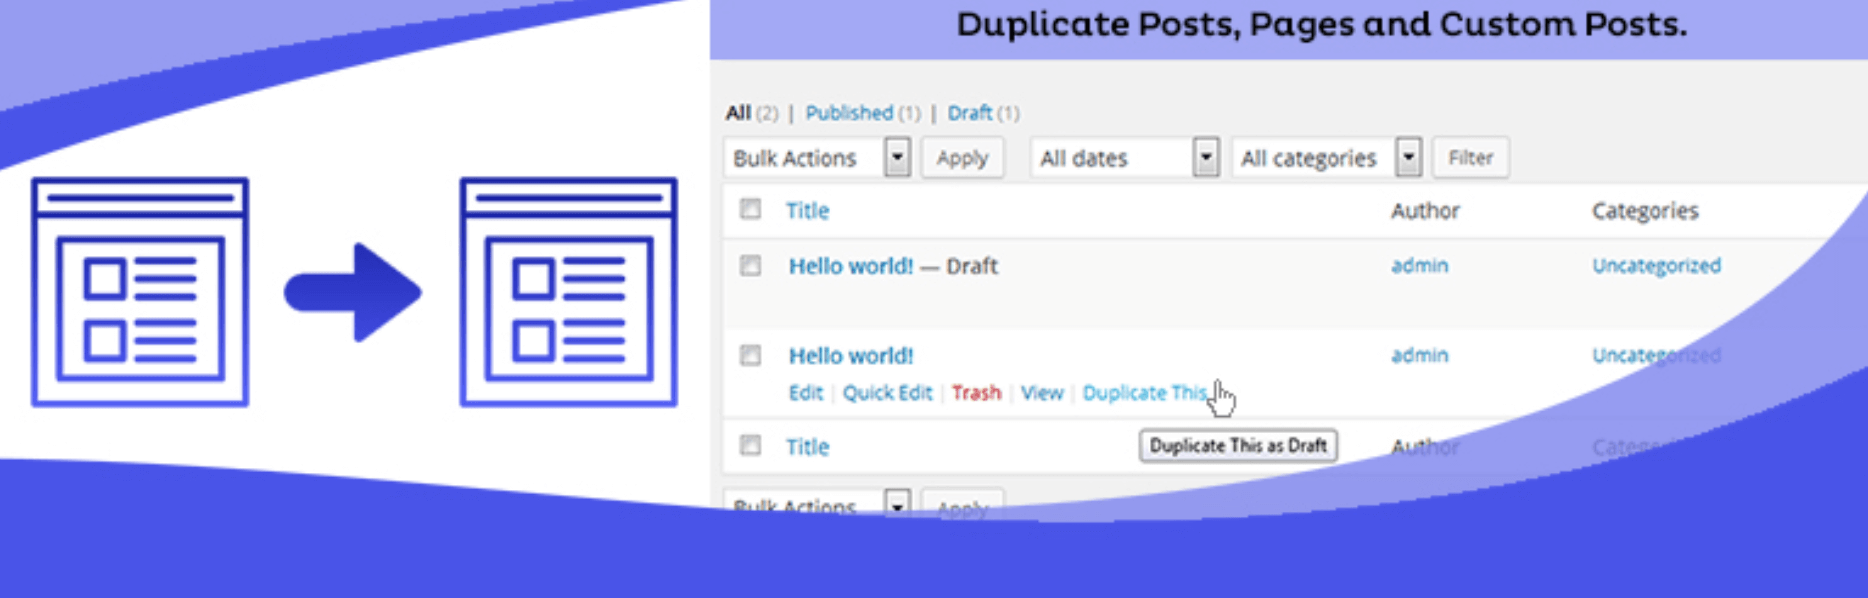 How To Duplicate A Page In WordPress using the Duplicate Page WordPress Plugin